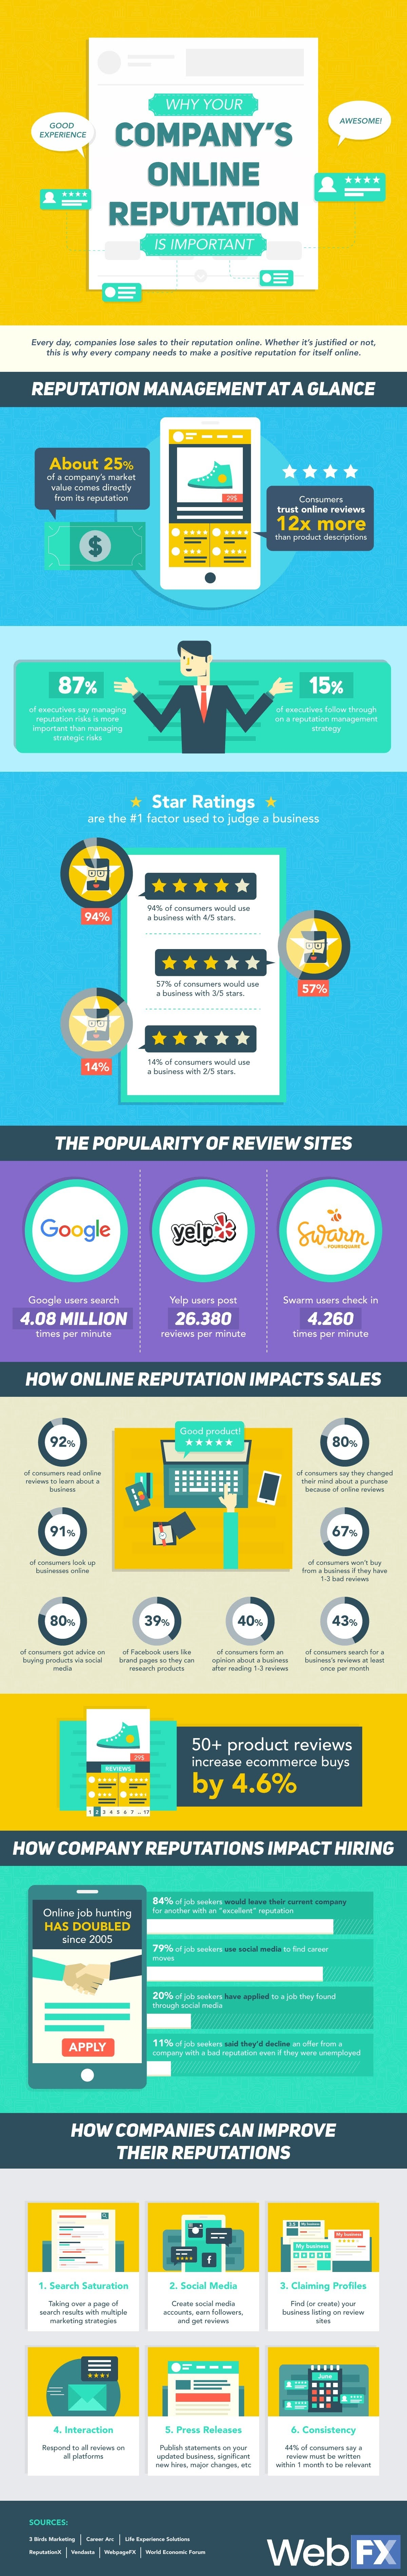 Why Your Company's Online Reputation Matters #infographic